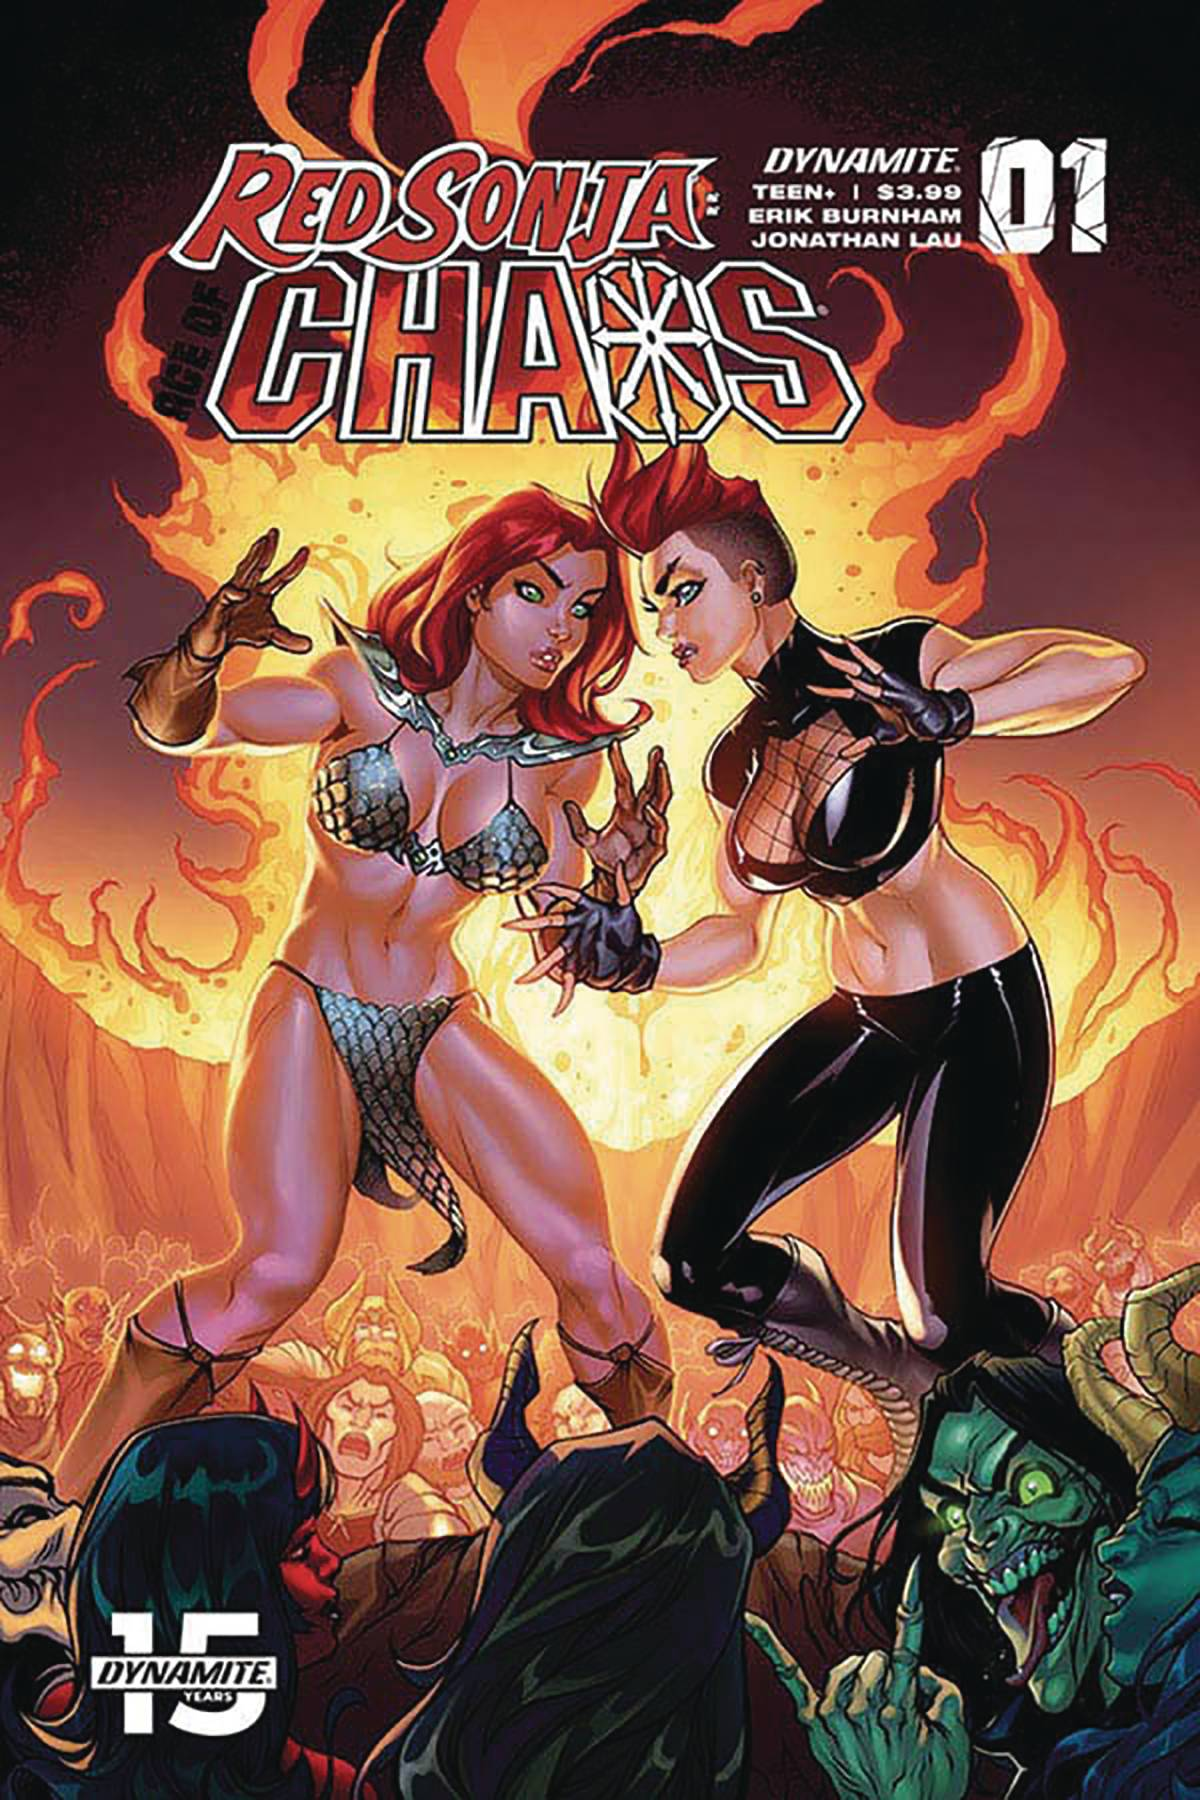 RED SONJA AGE OF CHAOS #1 CVR D GARZA